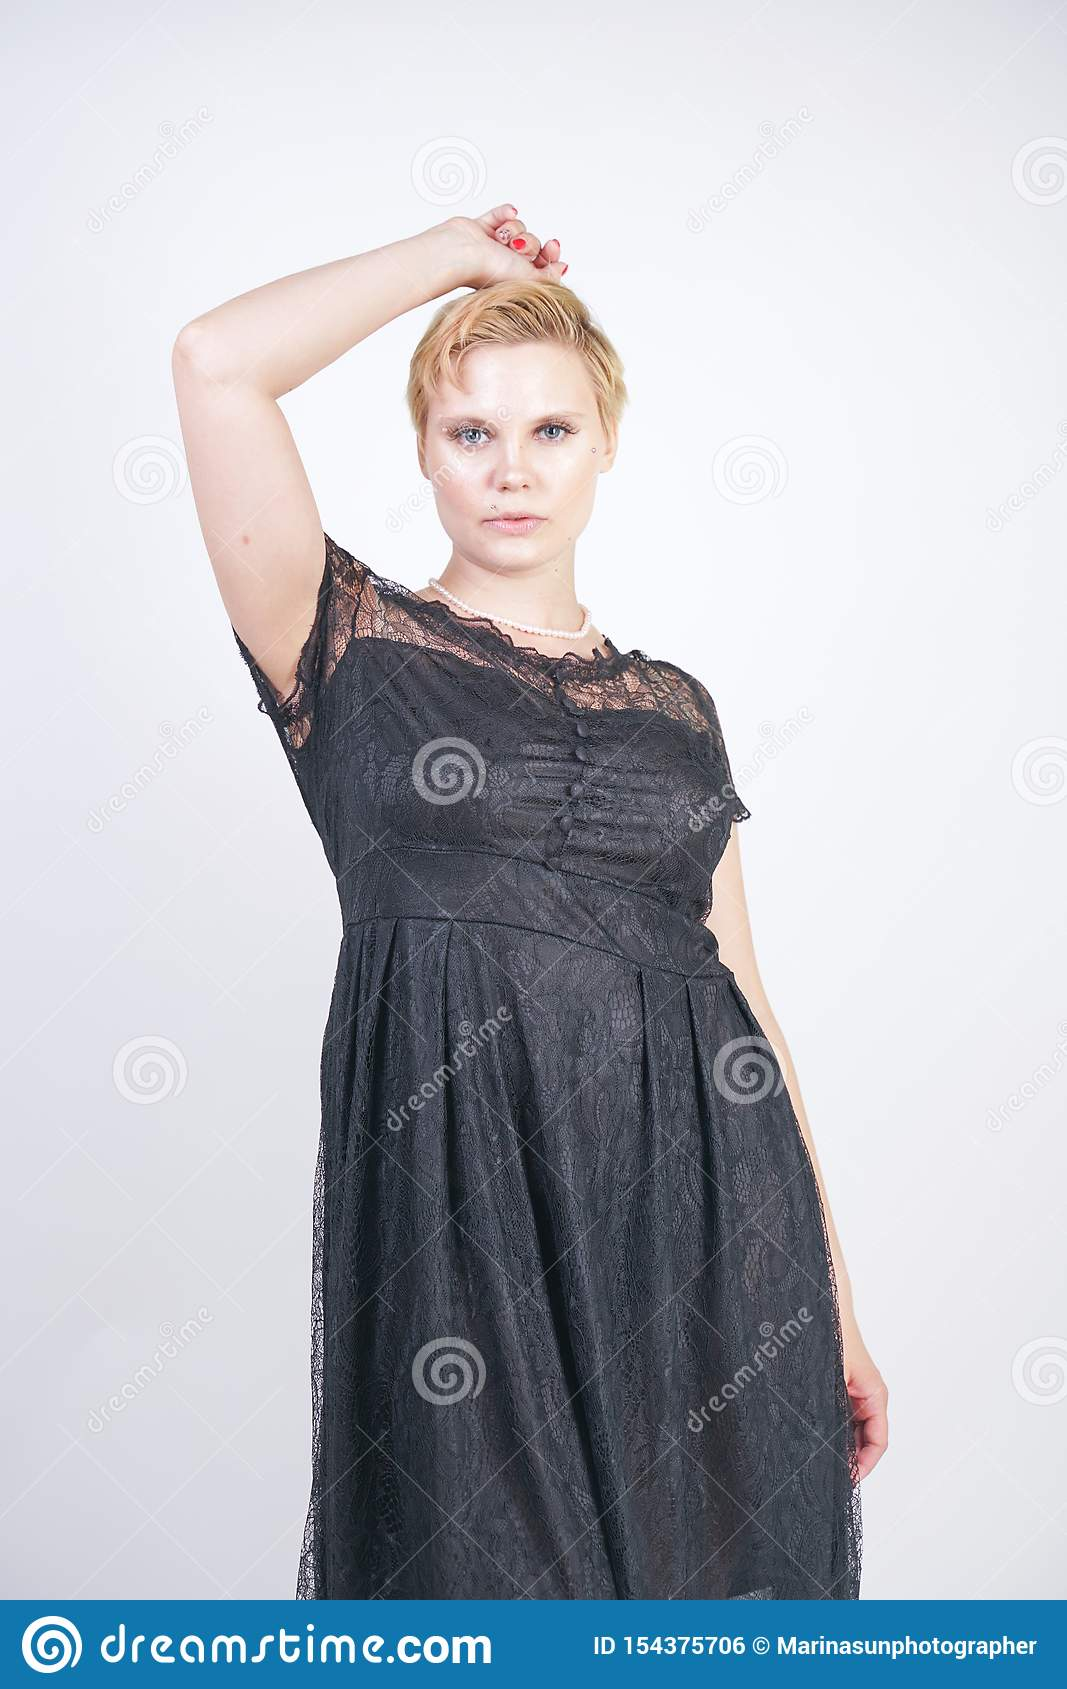 Hot Chubby Short Hair Woman With Cute Goth Lace Dress Stock Photo Image Of Luxury Evening 154375706